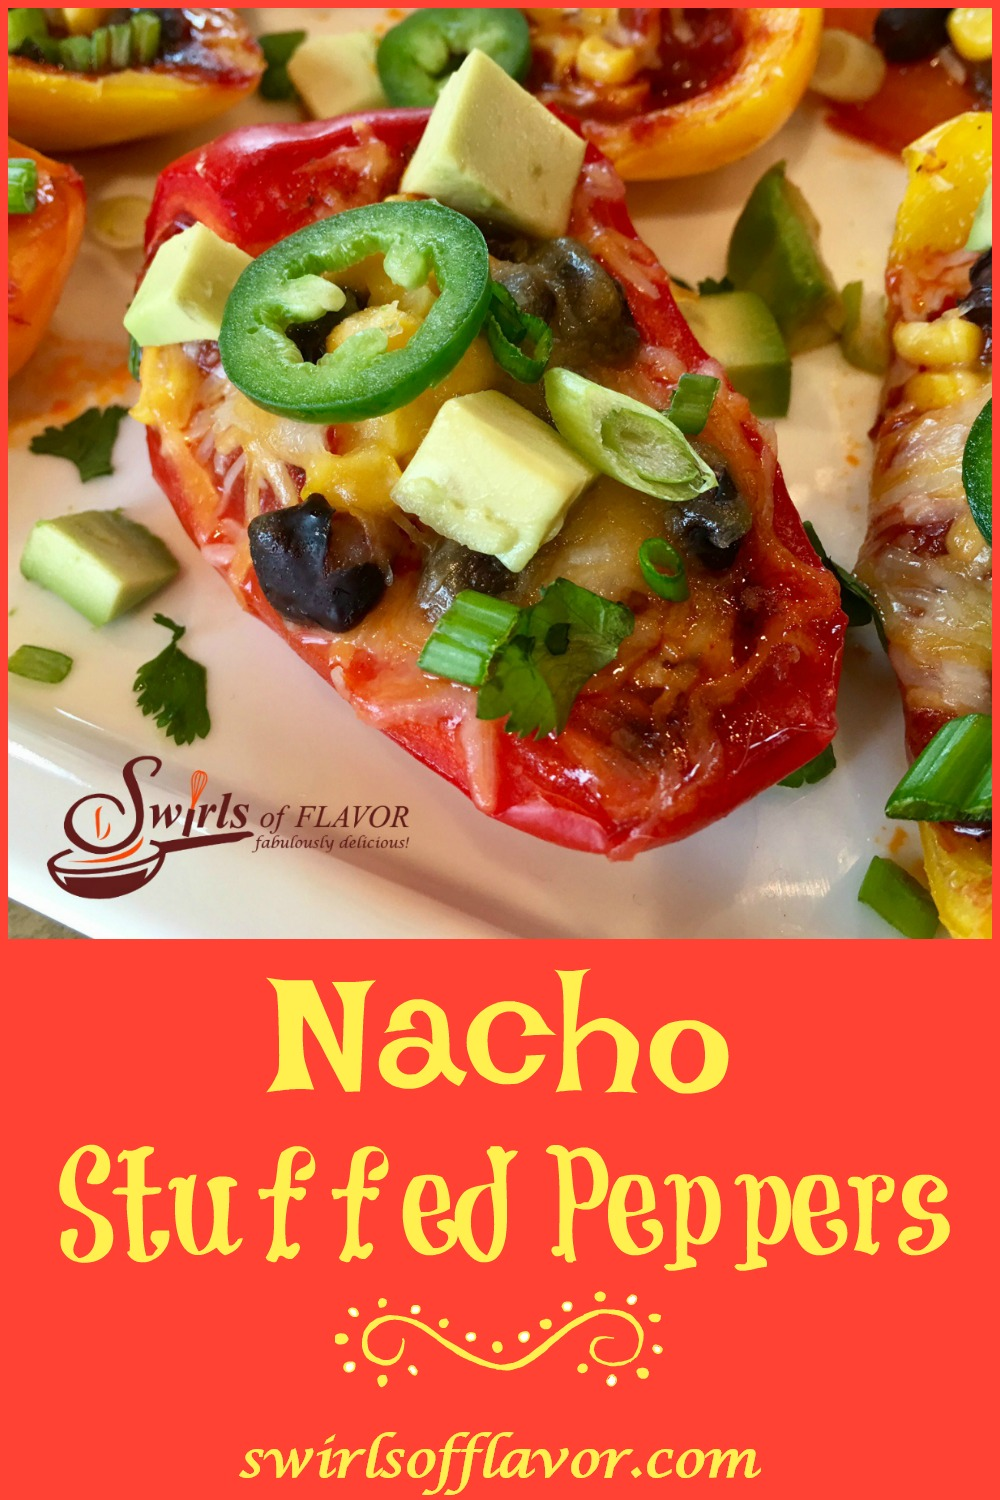 Spicy Nacho Stuffed Peppers is an easy appetizer recipe that's seasoned with taco seasoning and brimming with salsa, black beans, corn, avocado, jalapeno and cheesy goodness! #nachos #easyrecipe #appetizer #nachosrecipe #lowfat #glutenfree #cheese #stuffedpeppers #swirlsofflavor